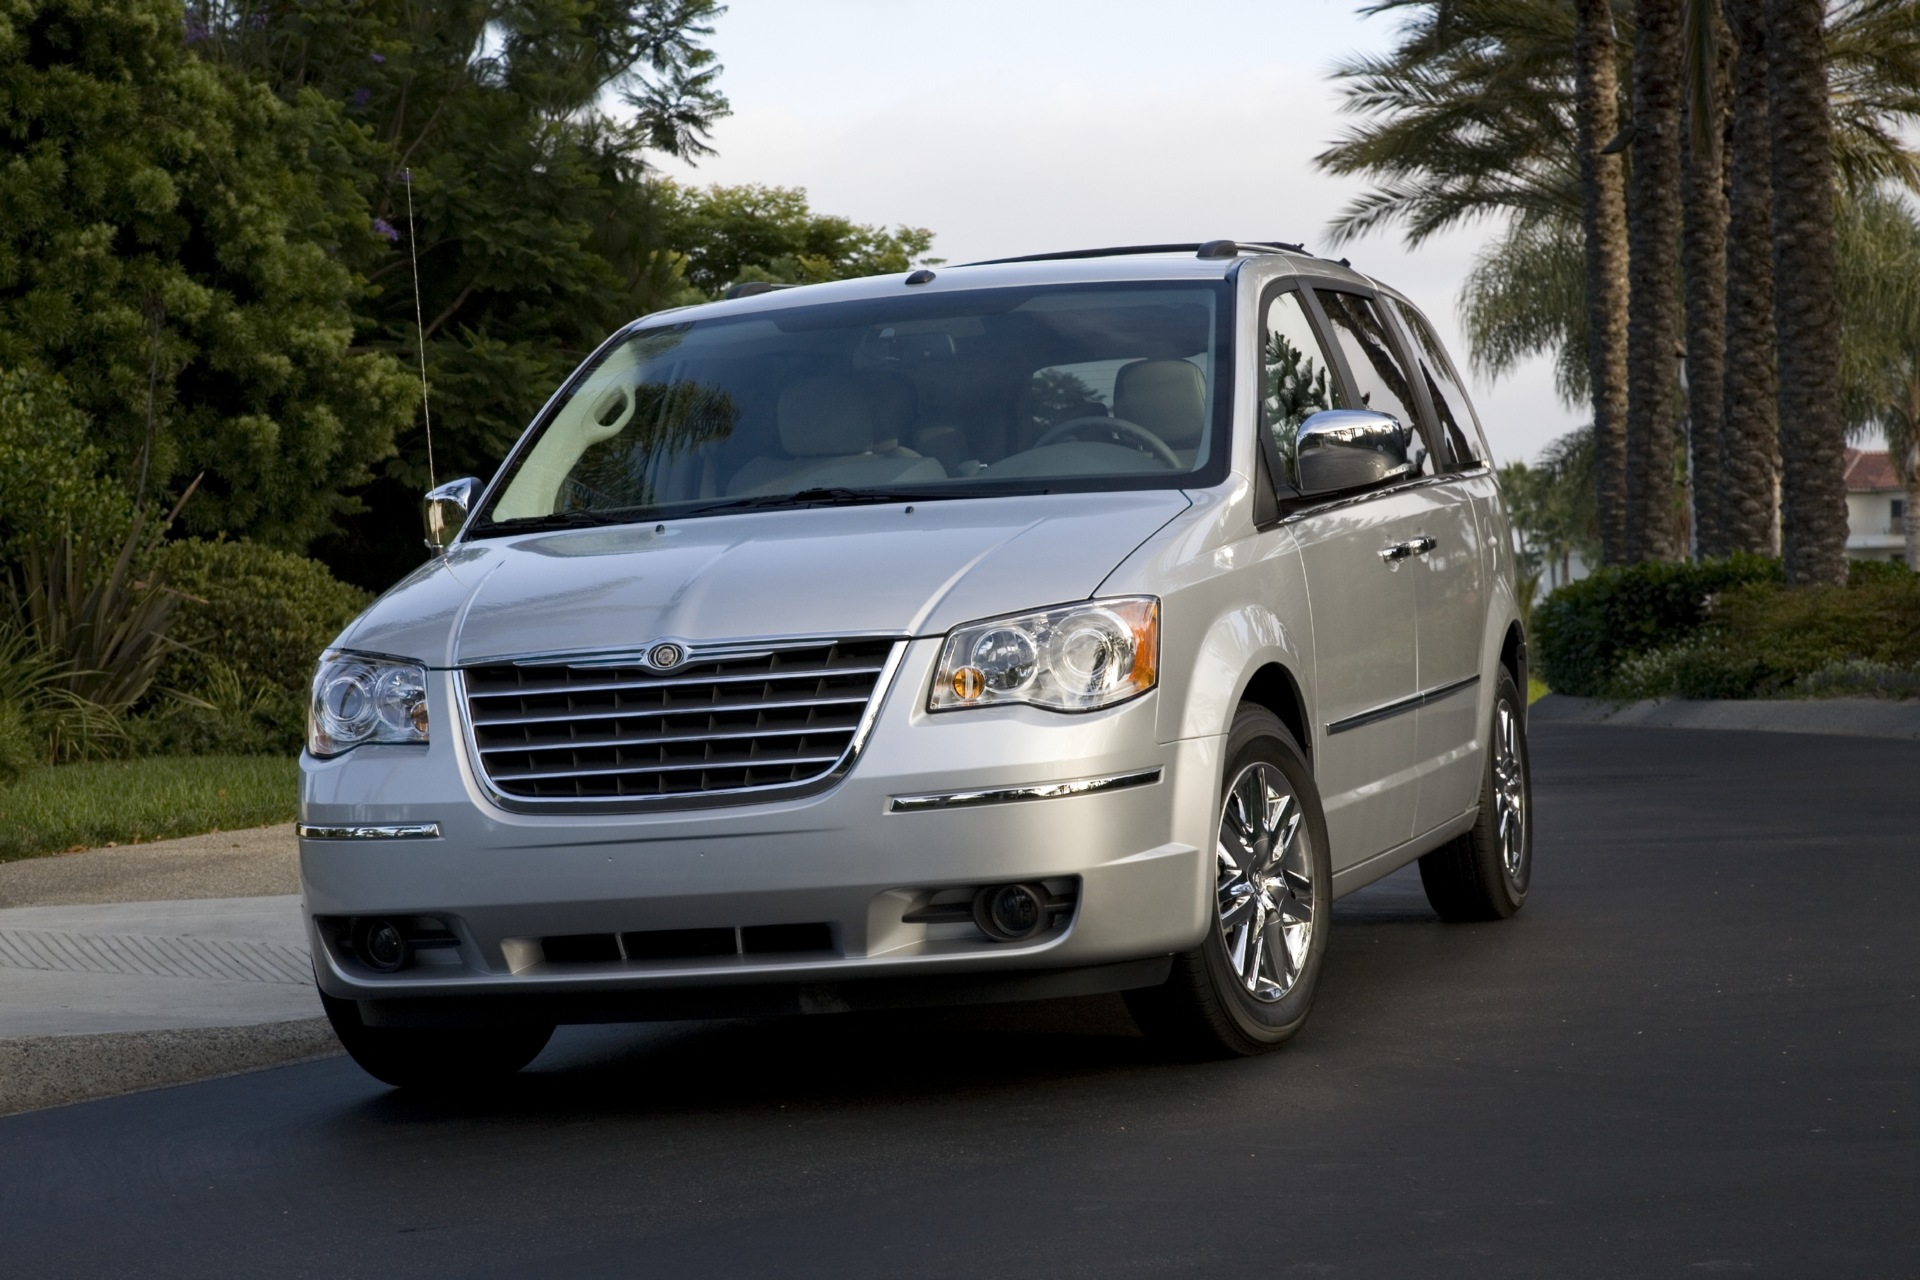 2008 chrysler town country. Black Bedroom Furniture Sets. Home Design Ideas